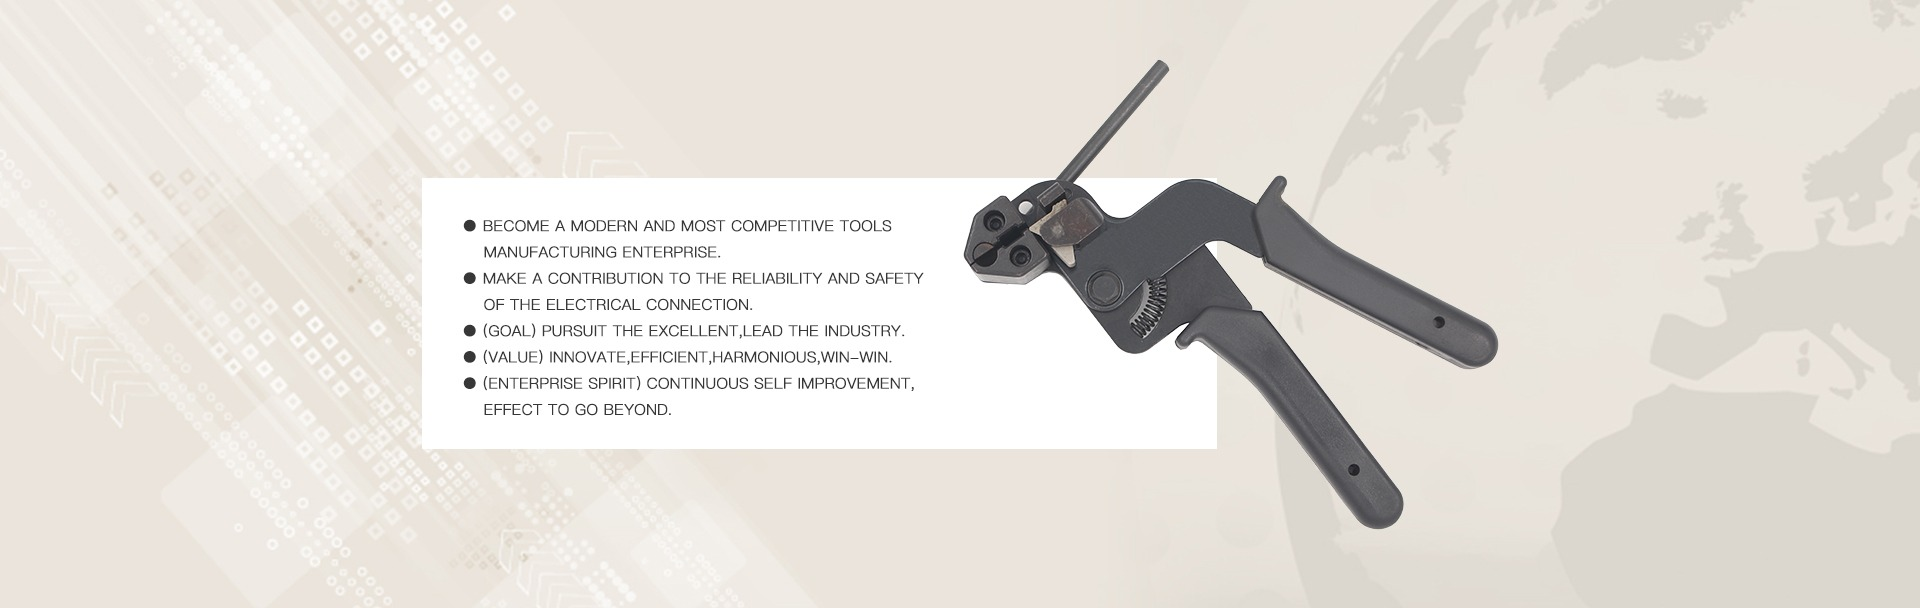 Wenzhou Lisida Tools Co., Ltd. - Hand Crimping Tool, Cable Cutter